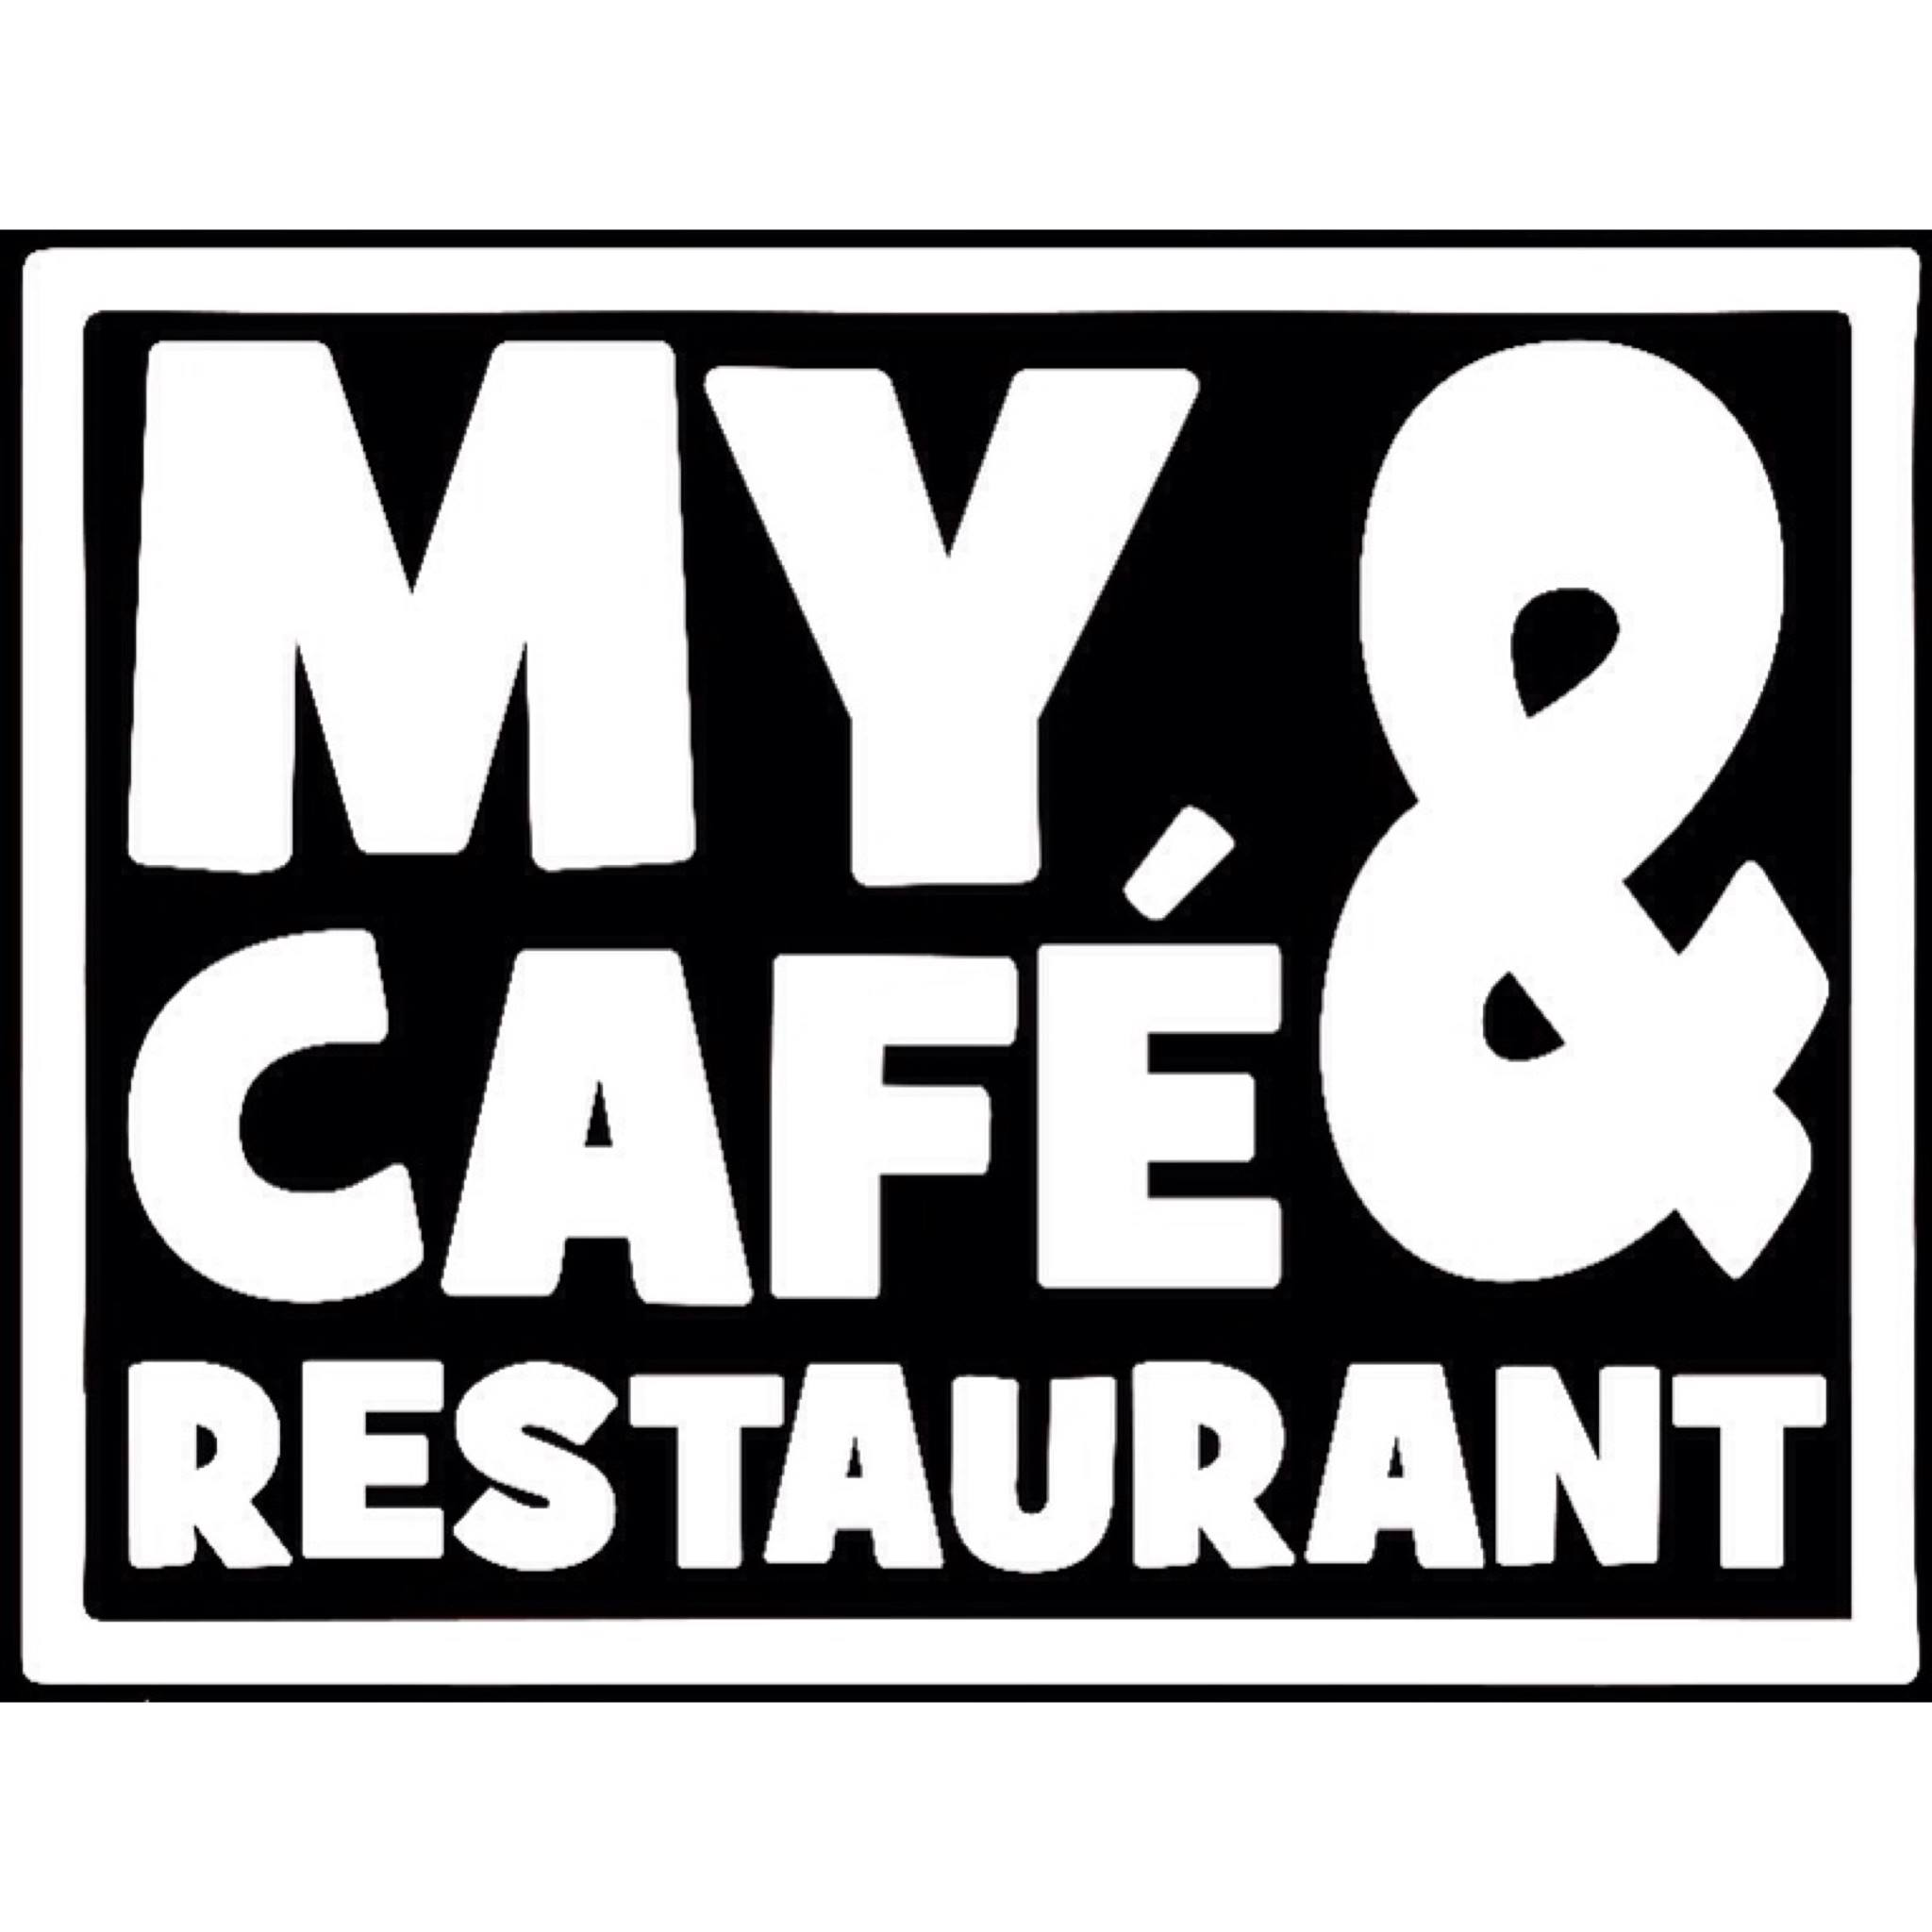 My Cafe & Restaurant